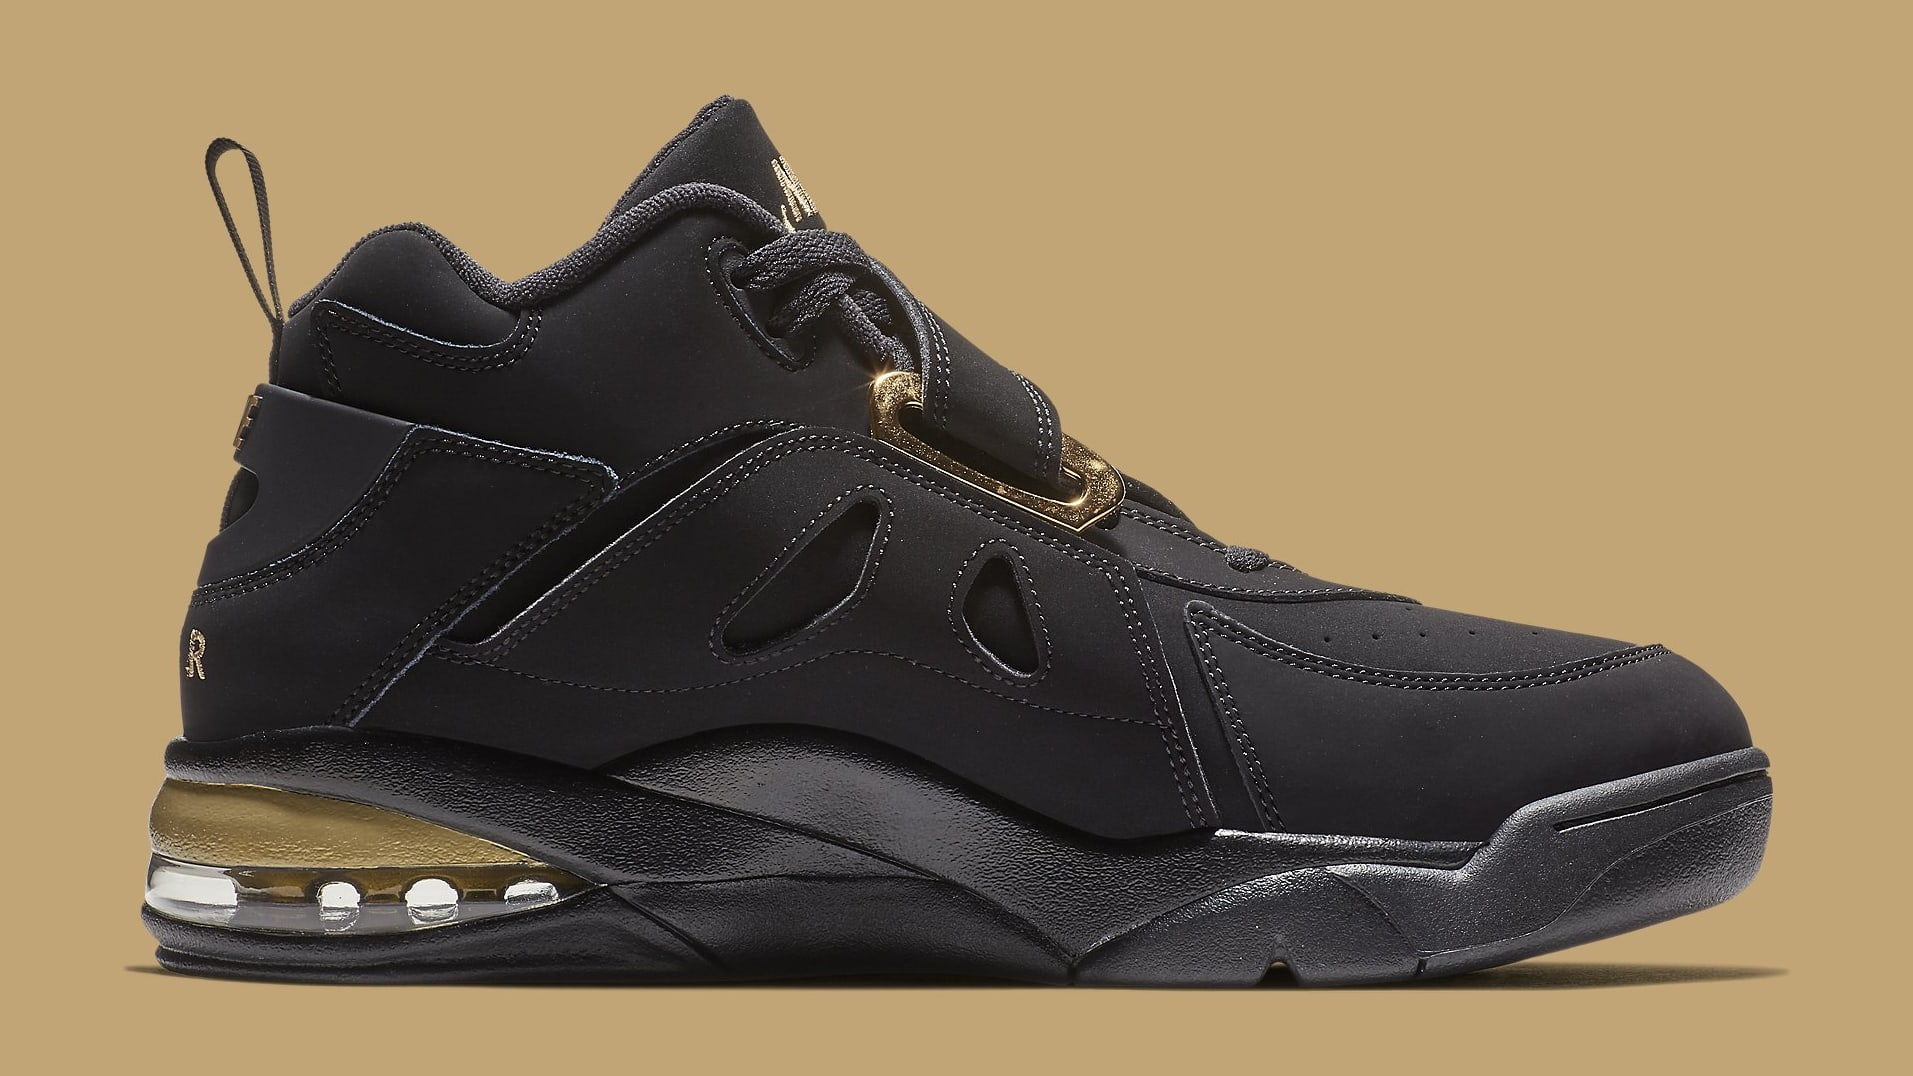 reputable site 0d27f 40d21 ... discount image via nike nike air force max cb metallic gold aj7922  d7689 ce85c